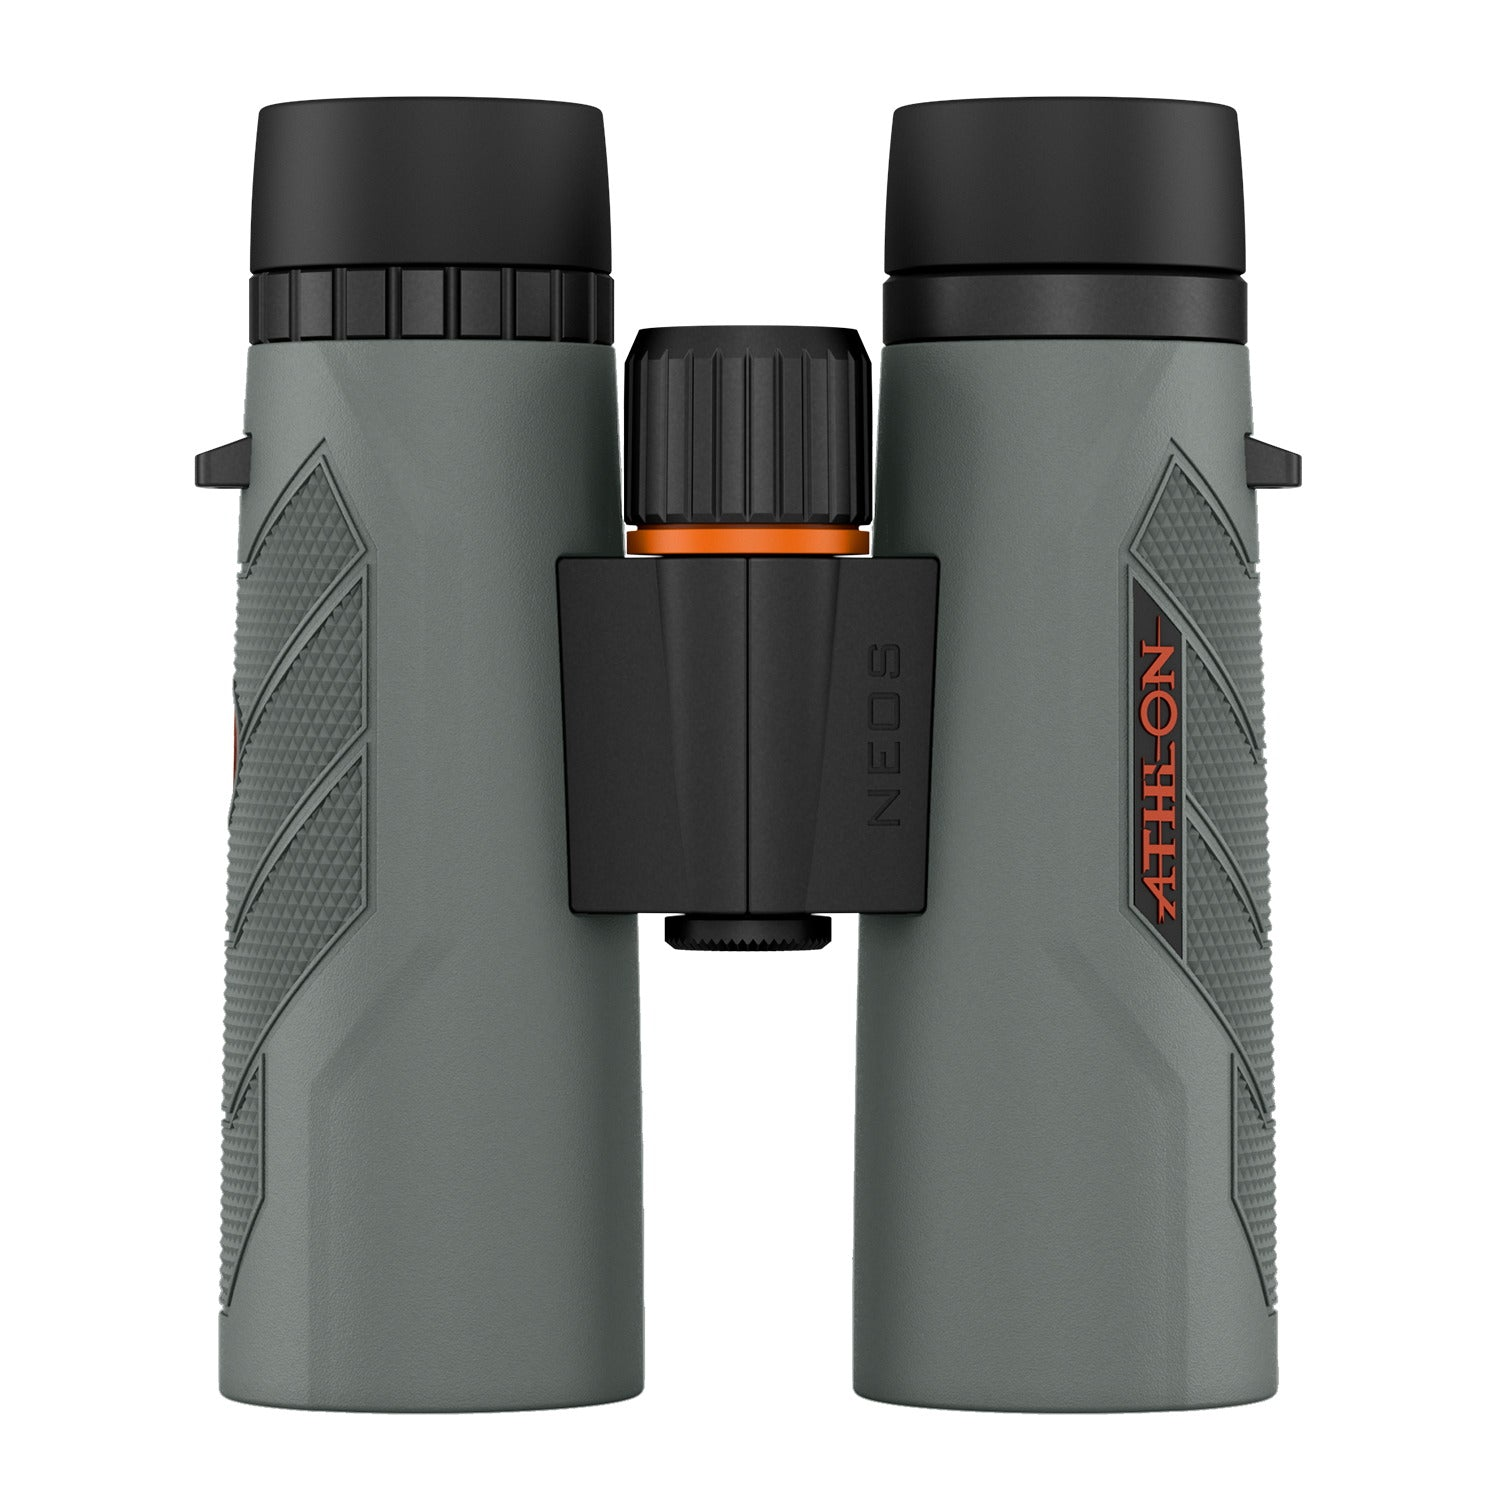 Athlon Neos G2 10x42mm HD Binoculars